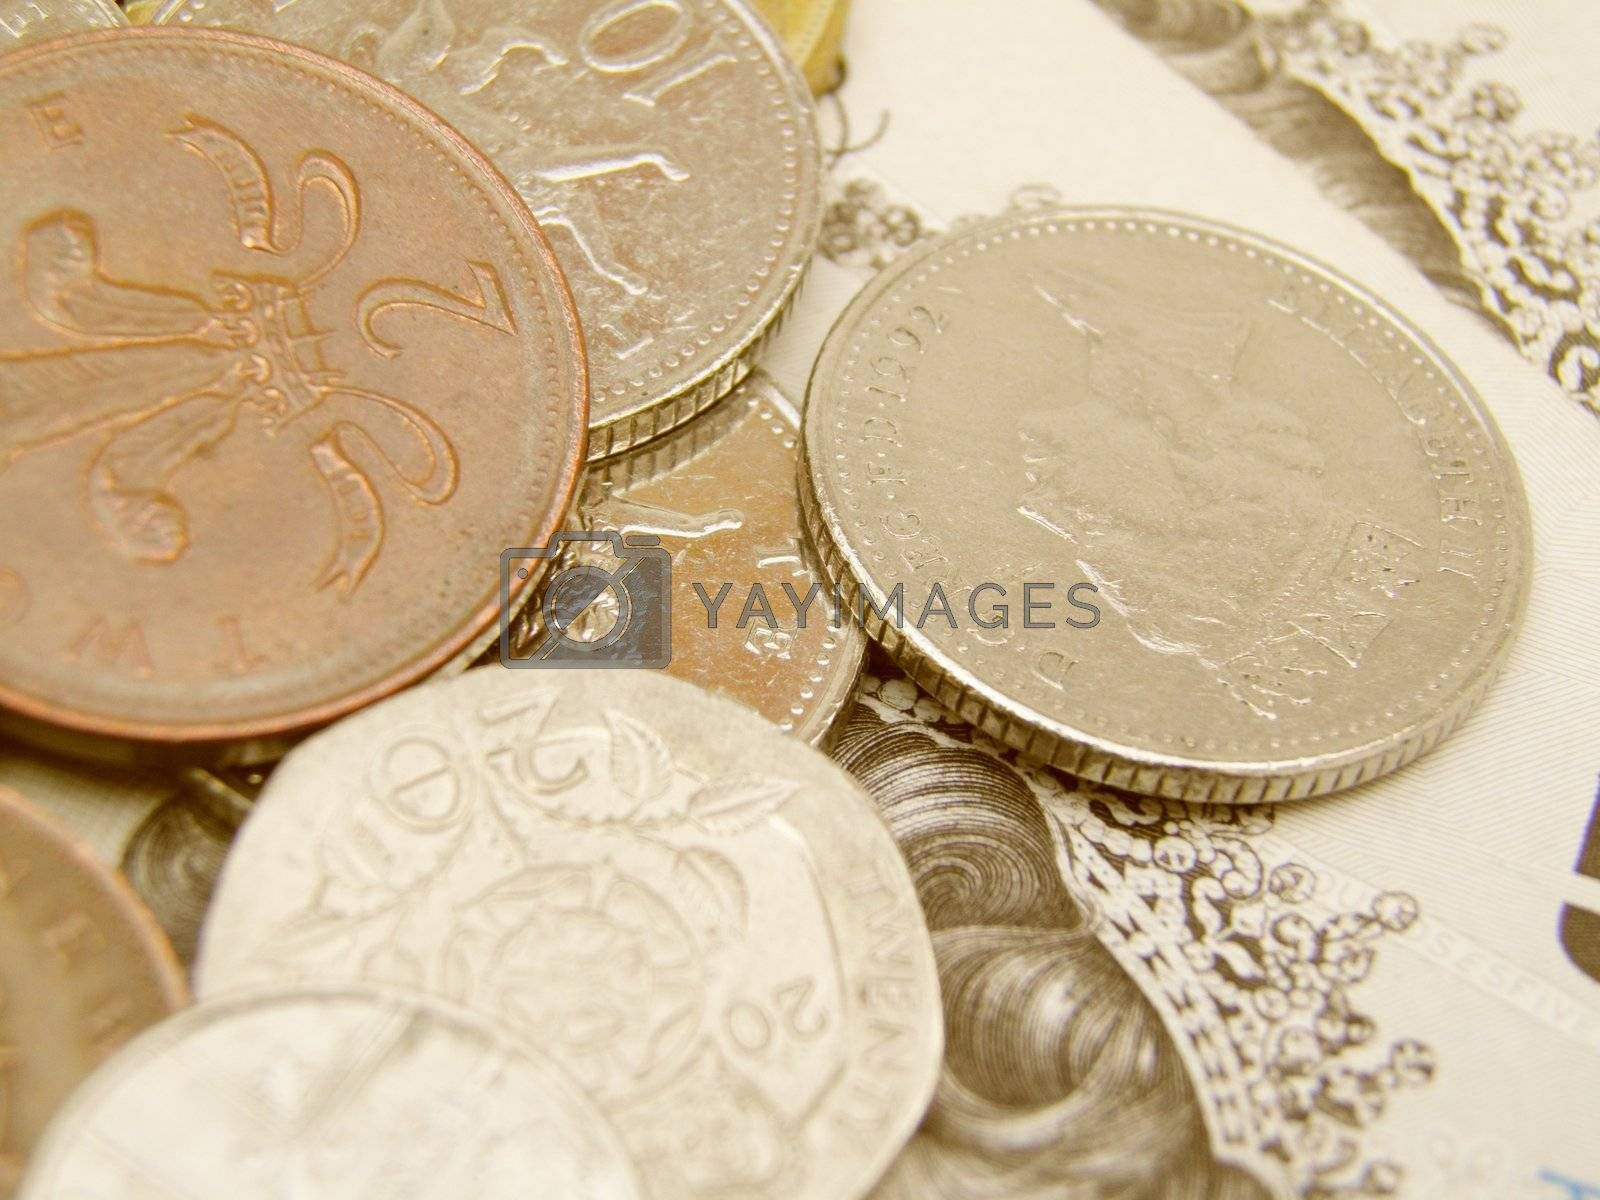 British Sterling pound currency - legal tender of the United Kingdom Union - banknotes and coins